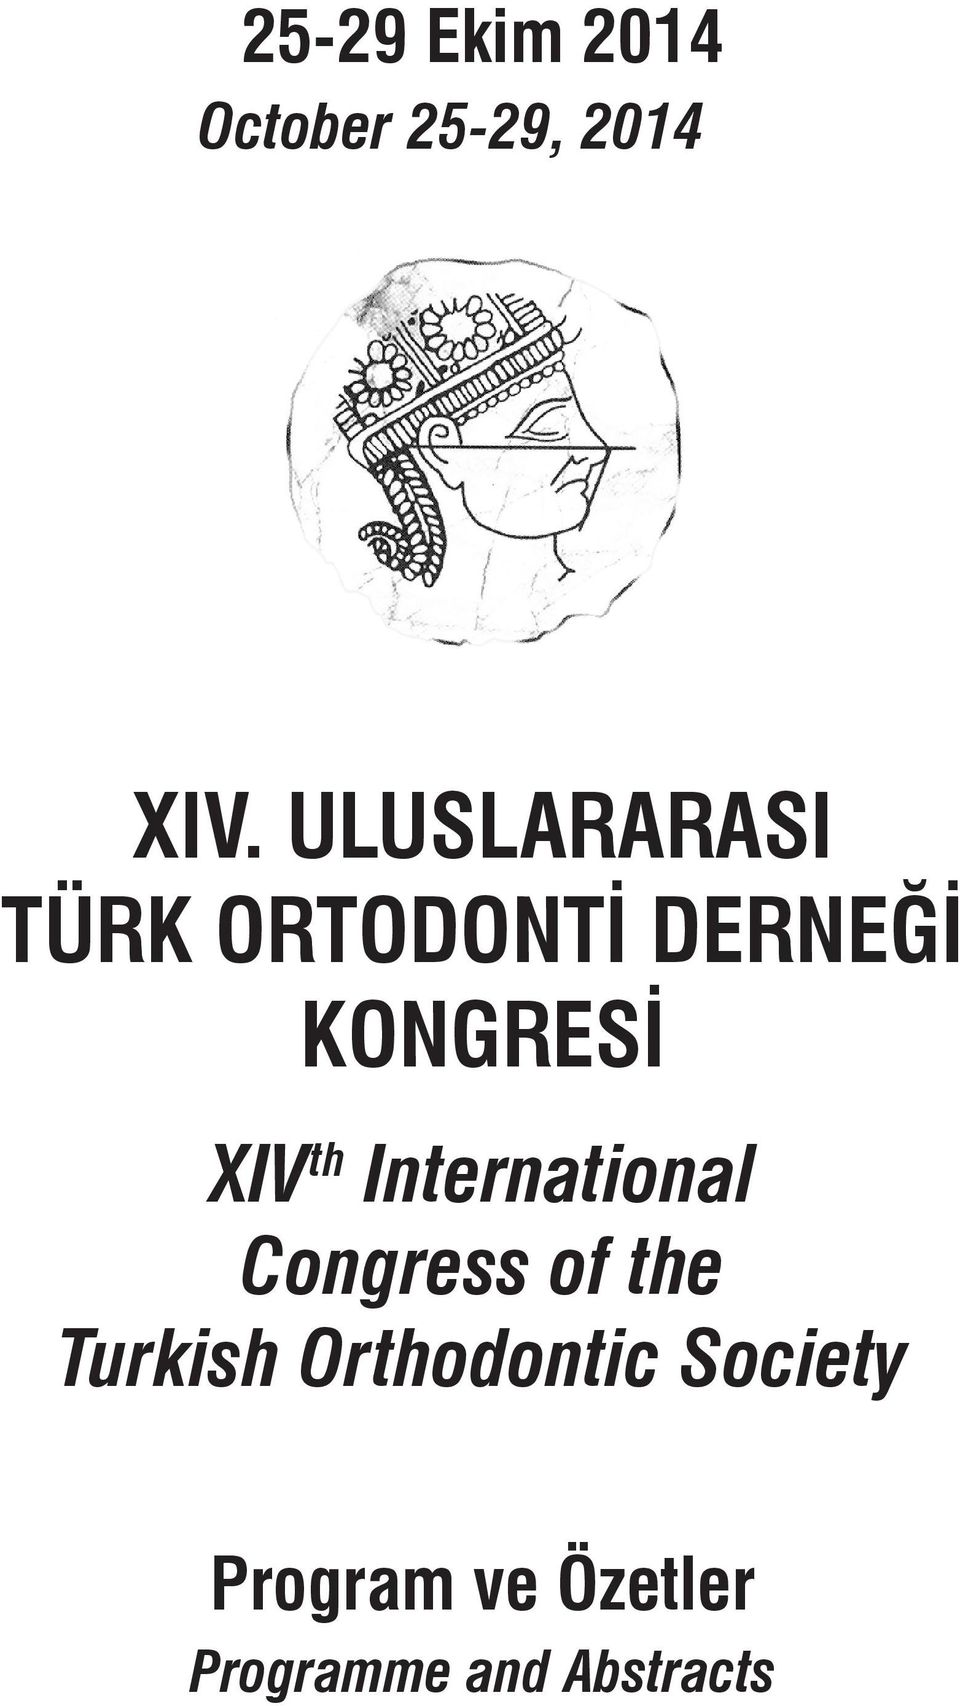 th International Congress of the Turkish